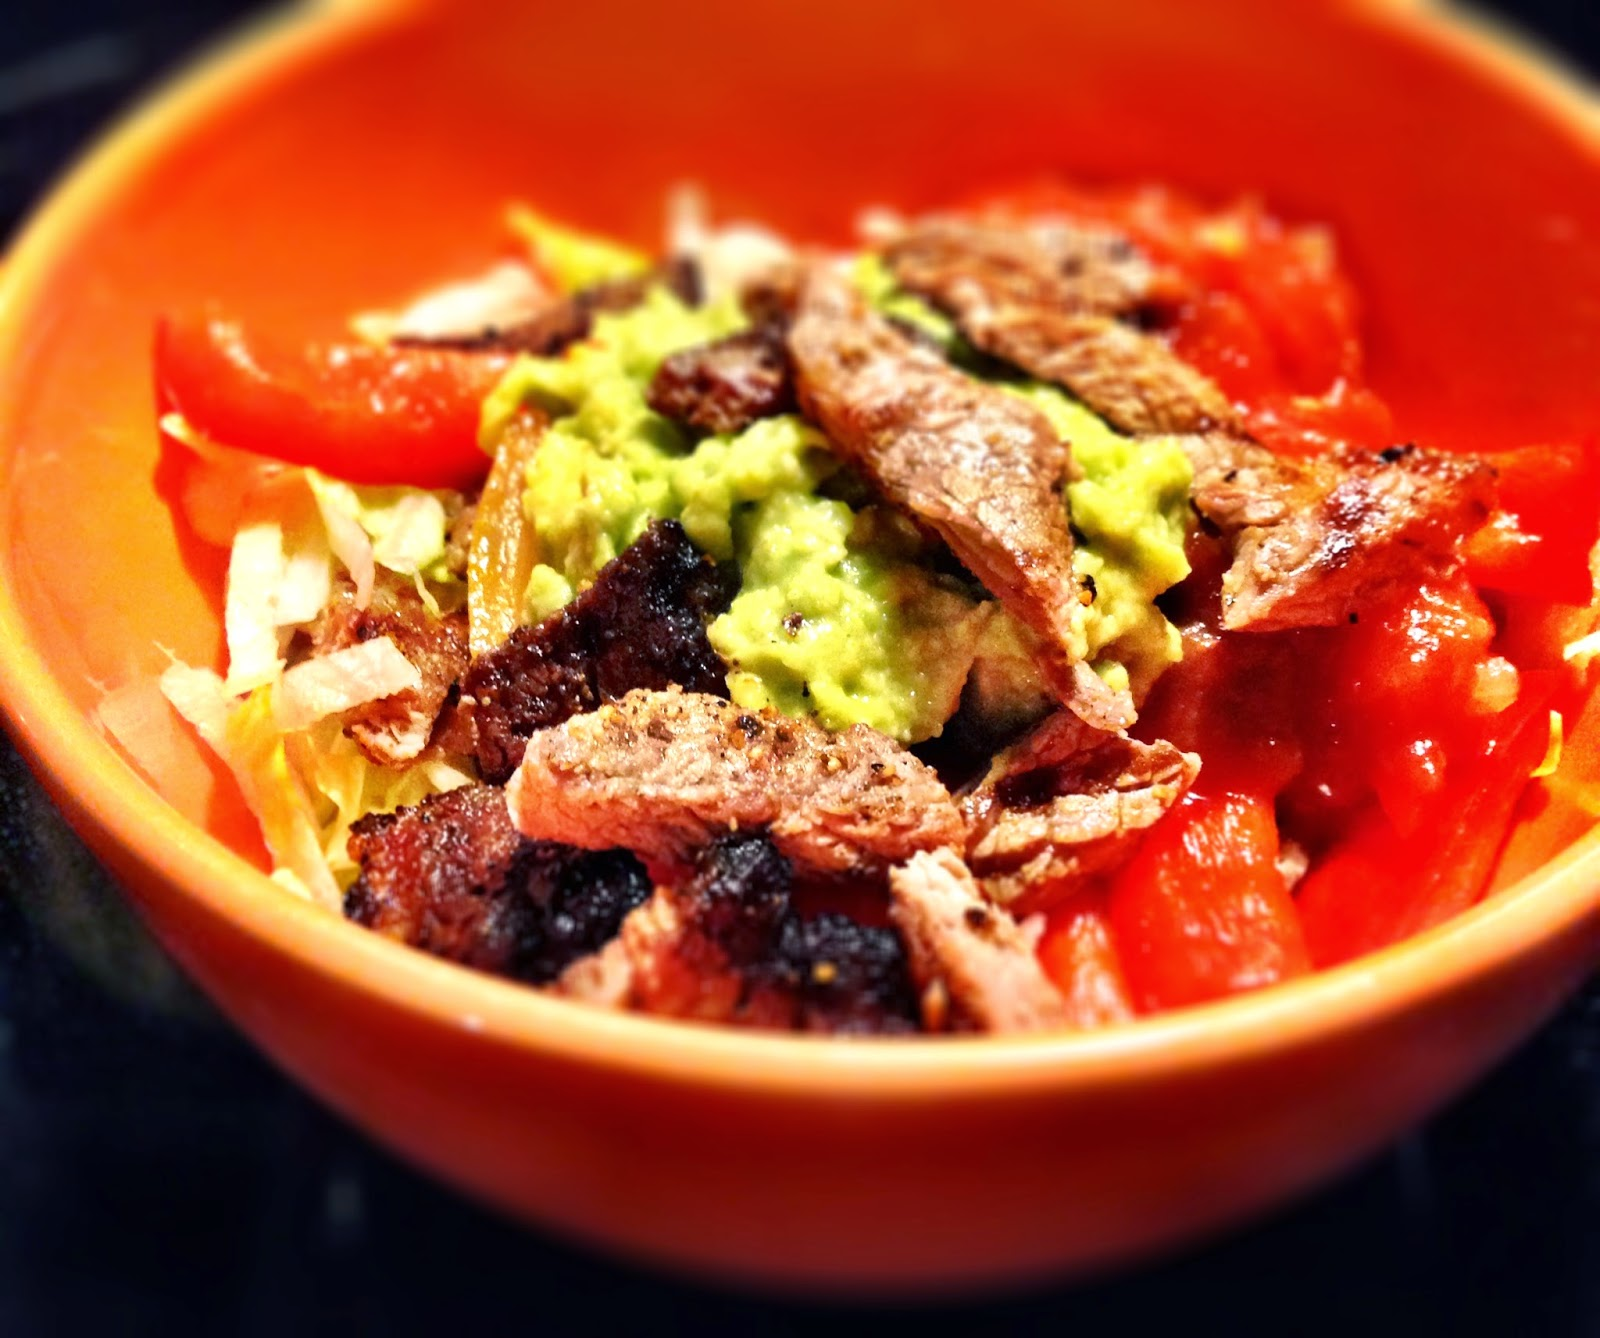 Chipotle at Home: Steak Taco Salads